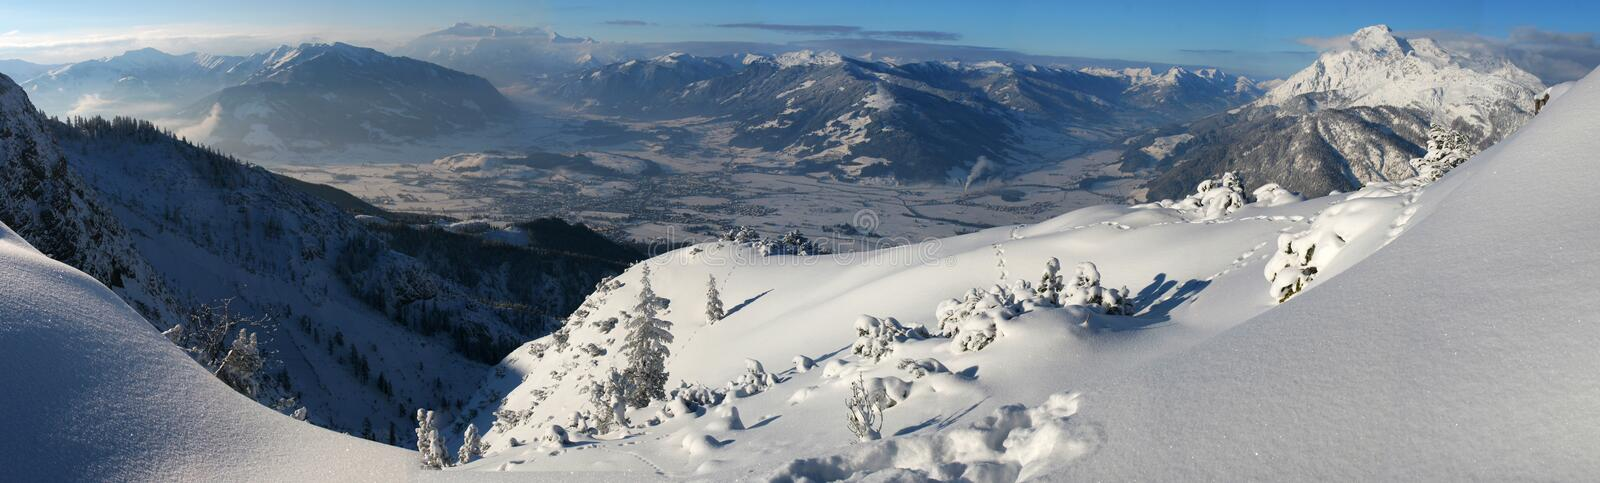 Download Winter mountain panorama stock image. Image of seasonal - 7169103